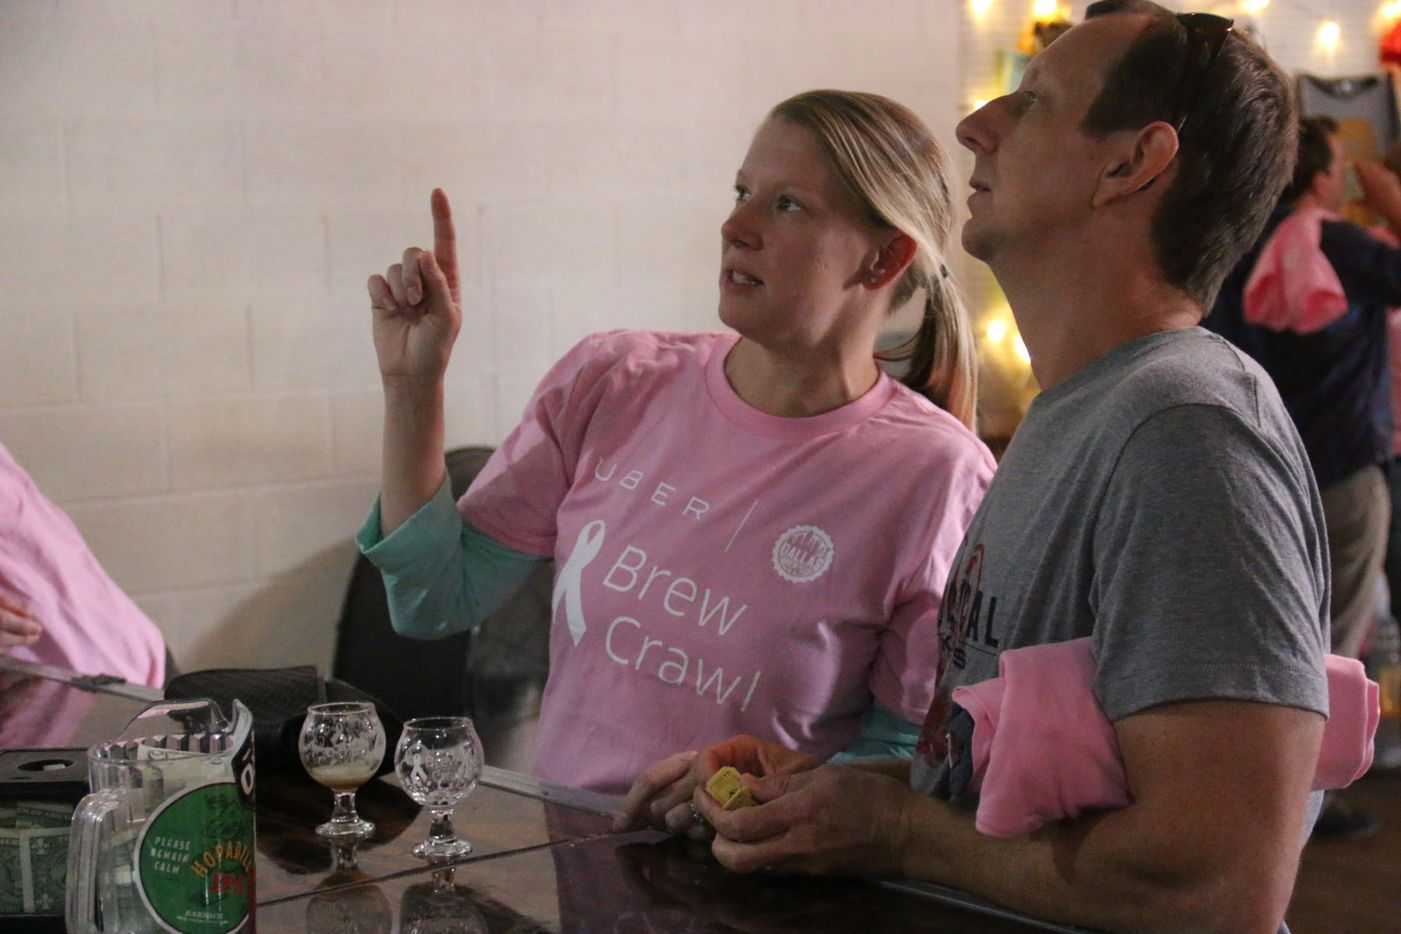 Kevin and Kim Vowell  at Noble Rey Brewing Co. during the inaugural Brew Crawl for Breast Cancer on Saturday in Dallas. The event was put on by Dallas Brew Scene, with all proceeds benefiting former Dallas Cowboys player Bradie James' Foundation 56 breast cancer nonprofit.